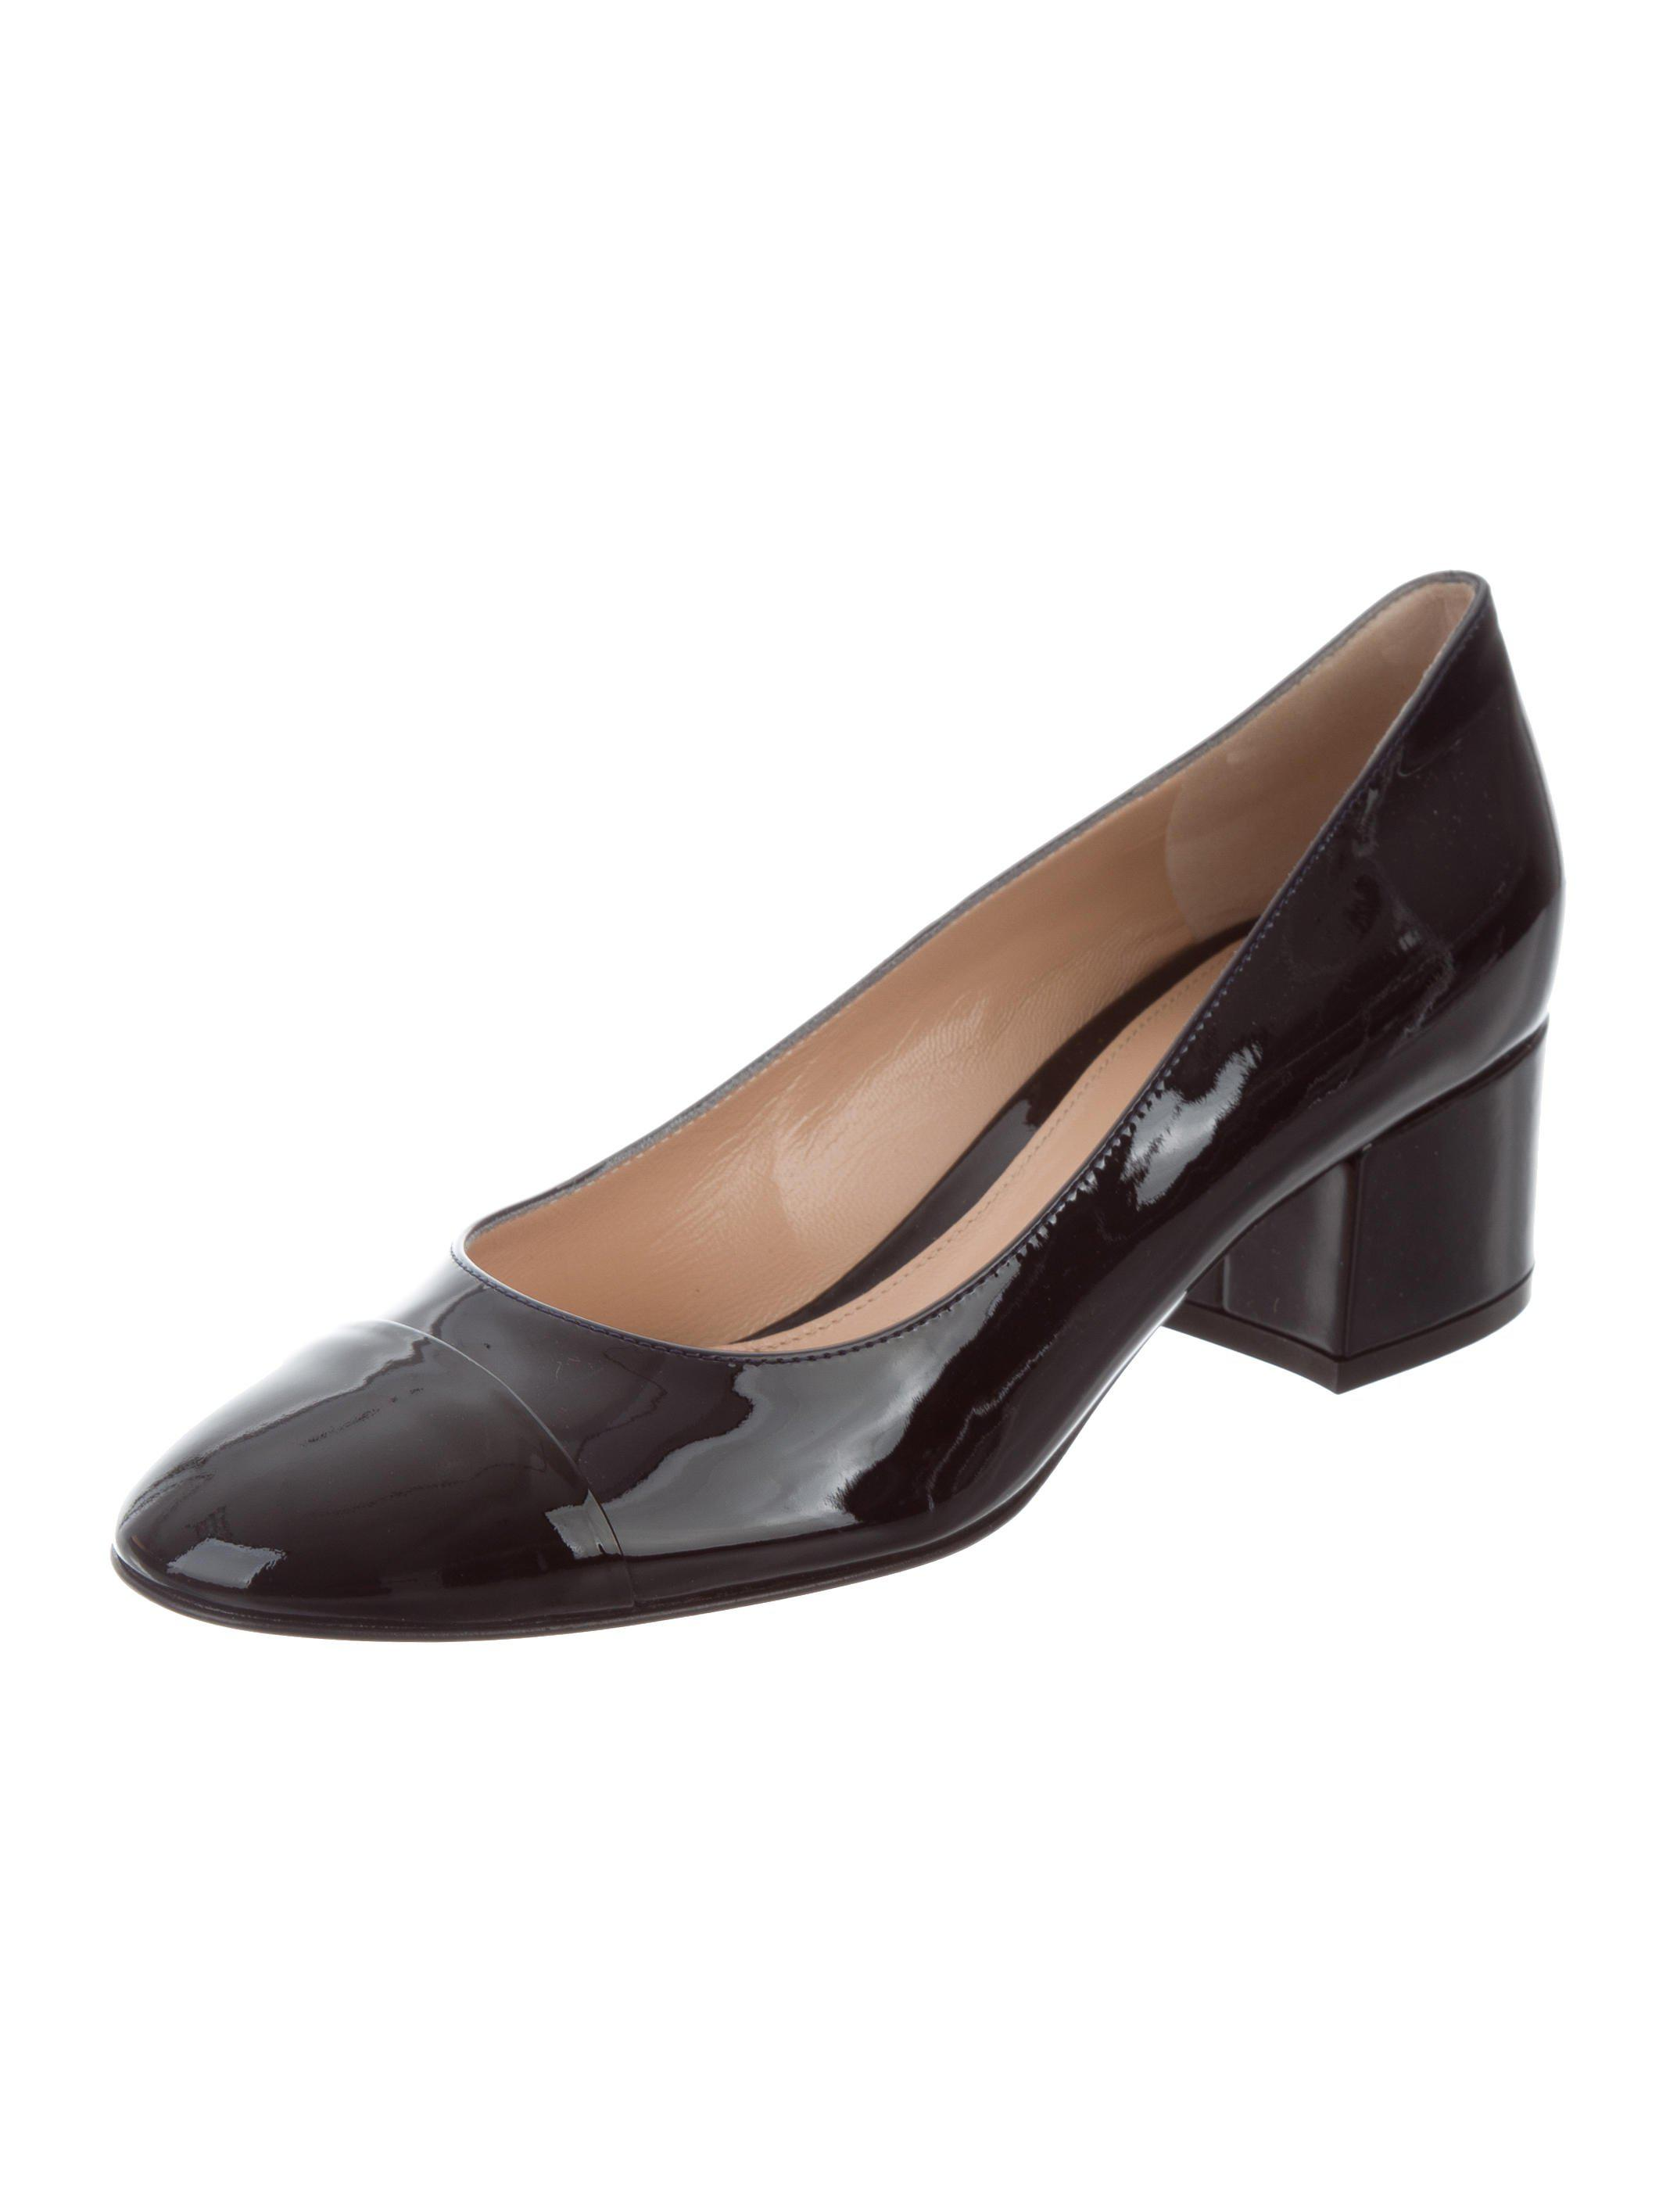 cheap sale popular Gianvito Rossi Patent Leather Cap-Toe Pumps w/ Tags outlet shop offer fake sale online clearance shop Pk1YJ3